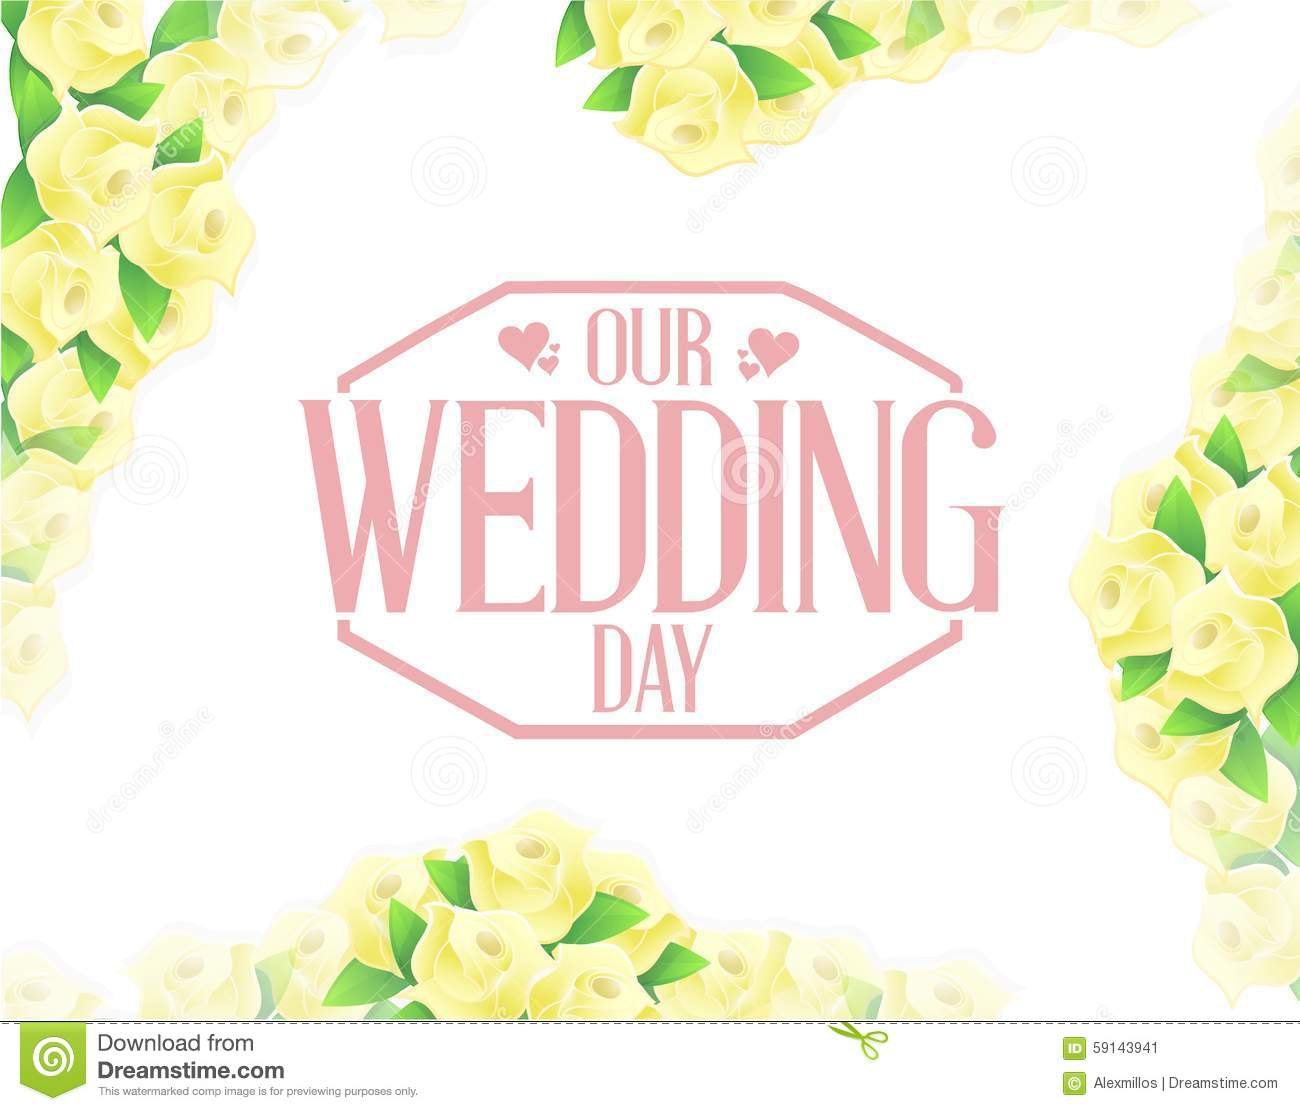 Our wedding day yellow flowers border background stock our wedding day yellow flowers border background junglespirit Choice Image